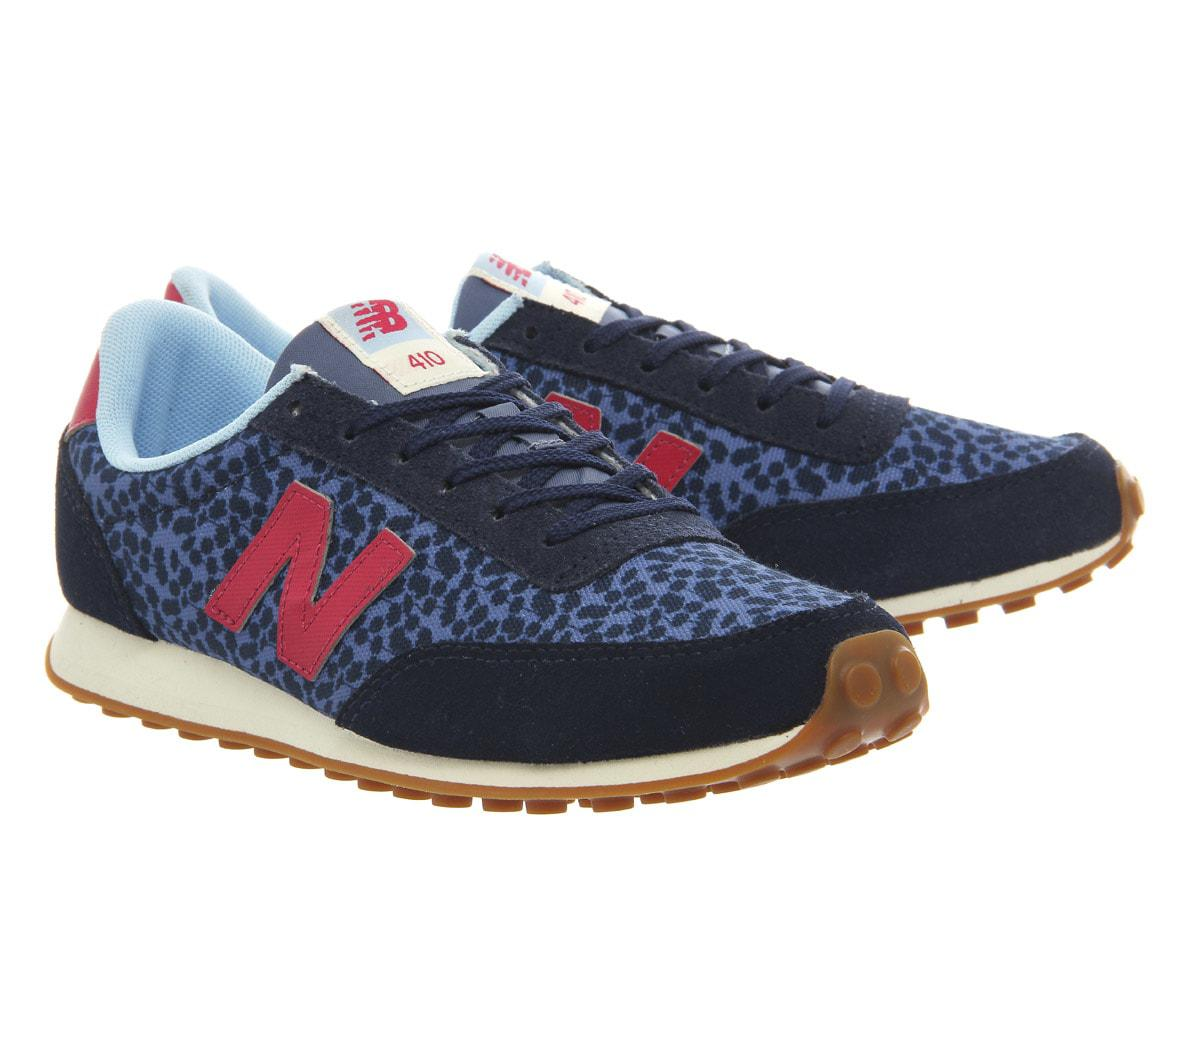 19848be09df1a ... sneaker 7fd54 e757c aliexpress gallery. previously sold at offspring womens  new balance 410 6fe2c 9e15f ...